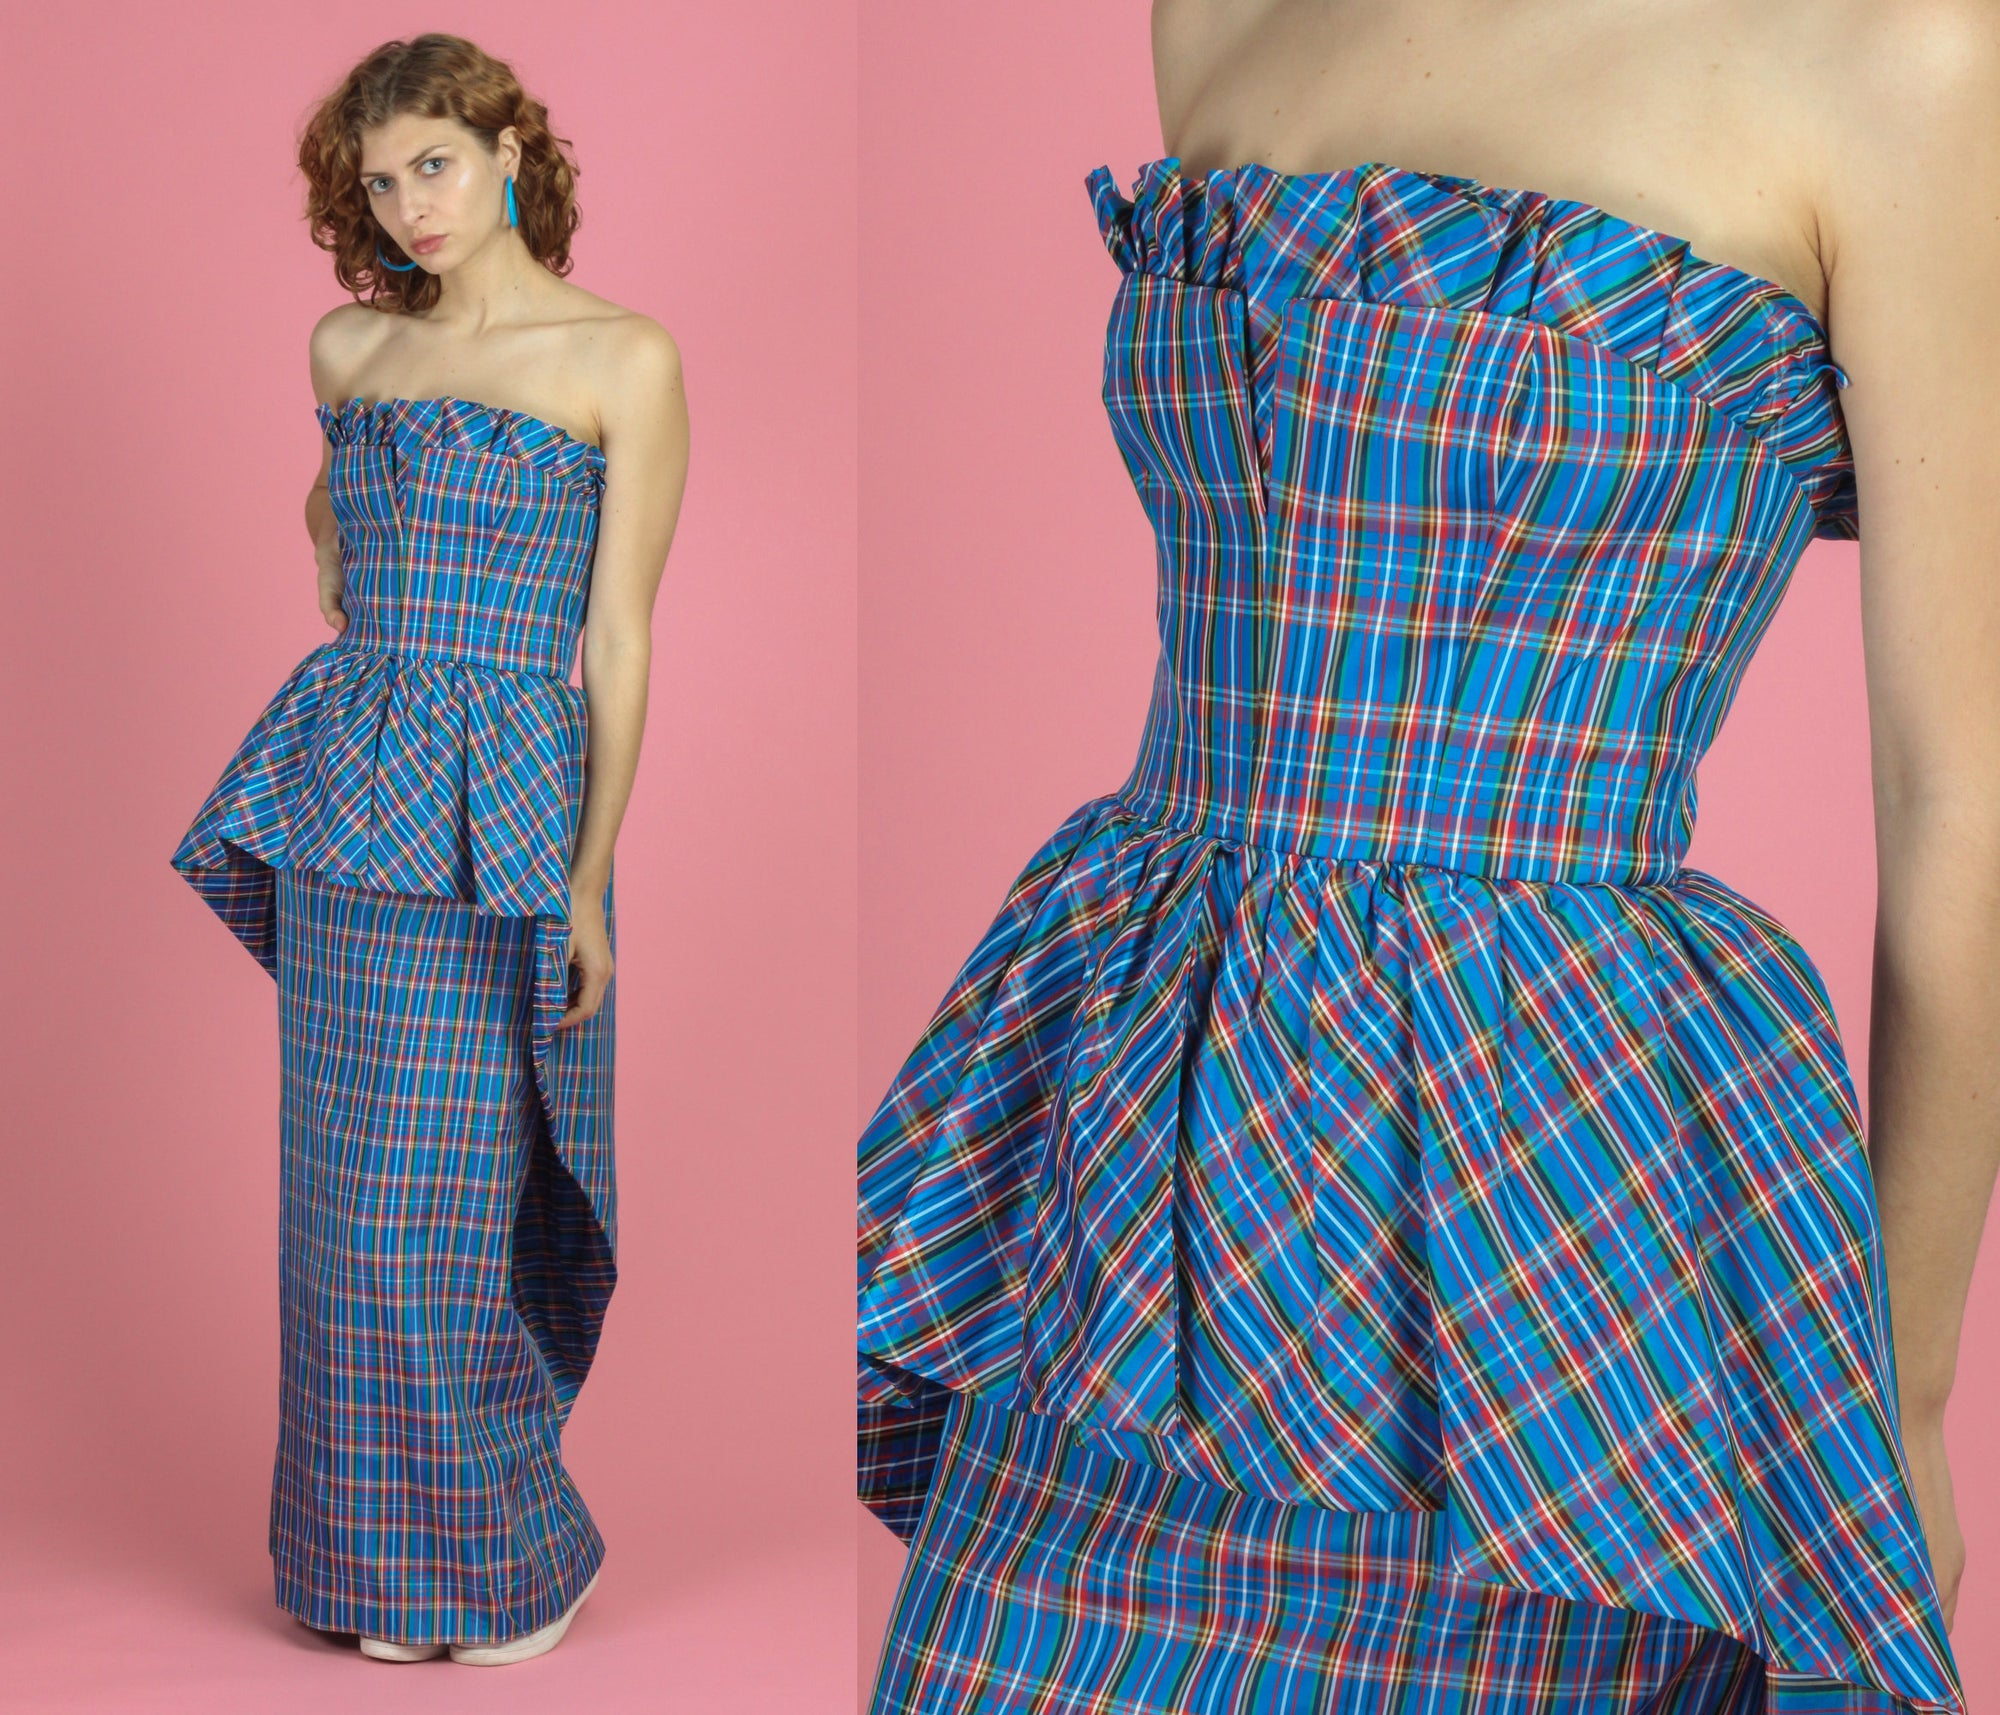 Victor Costa 80s Vintage Plaid Strapless Maxi Dress - Small